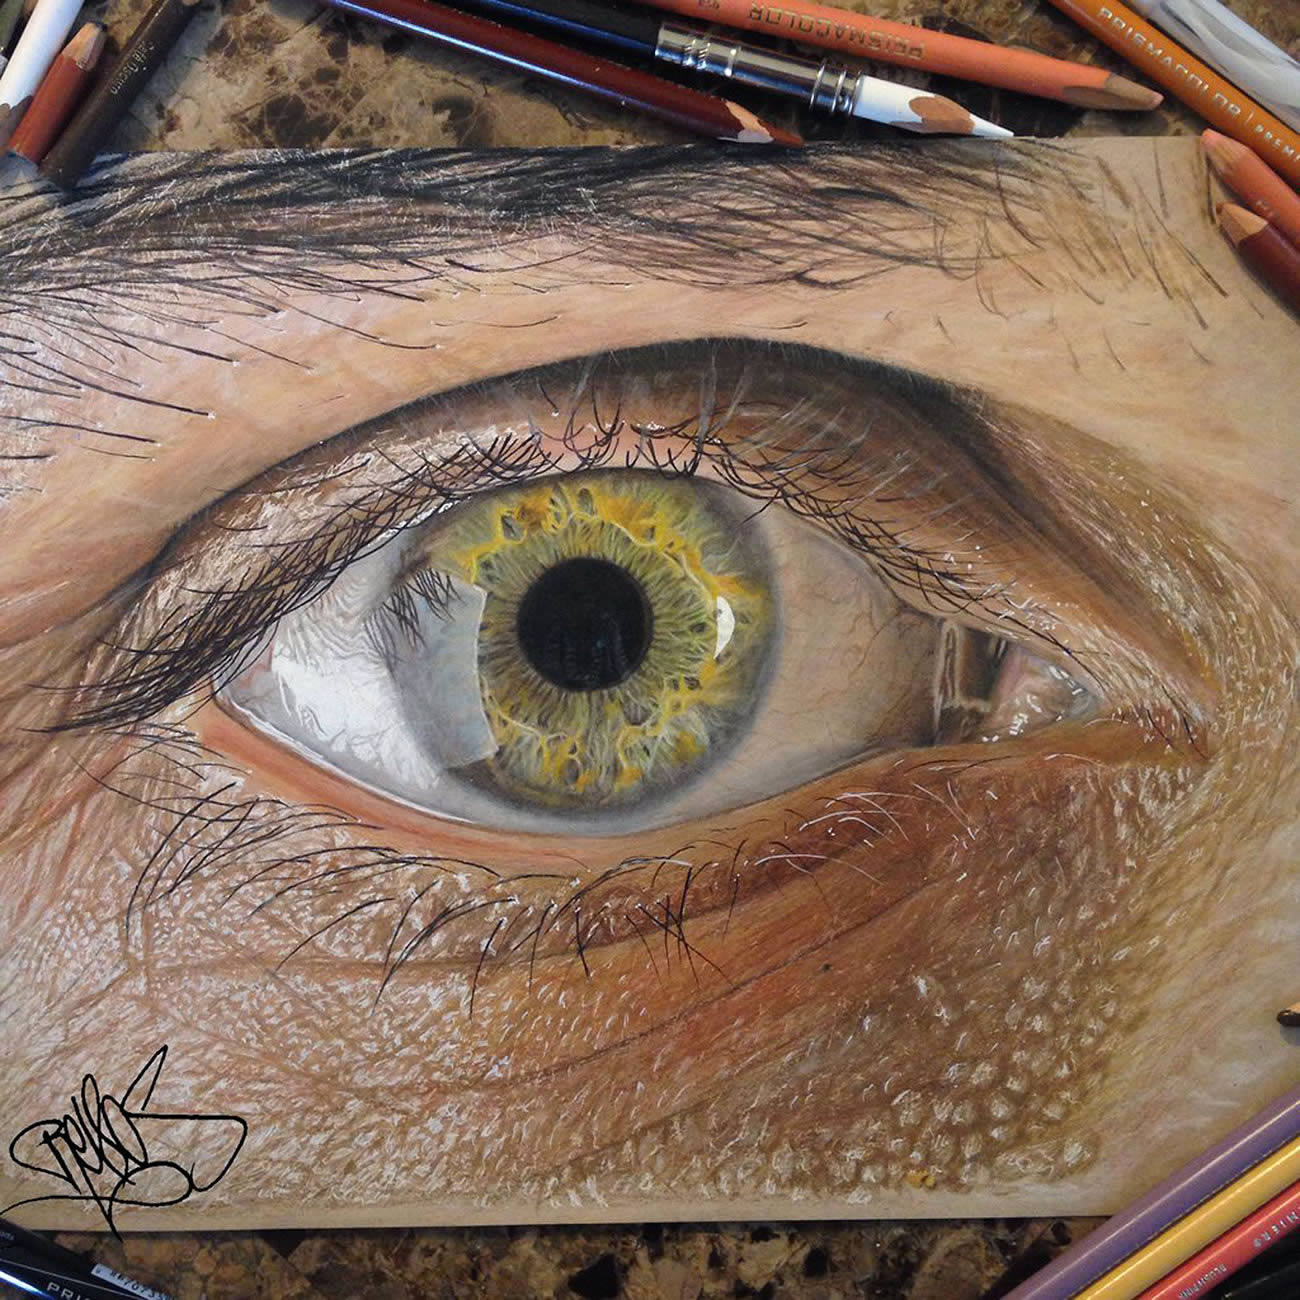 Hyperrealistic Eyes Drawn With Colored Pencils